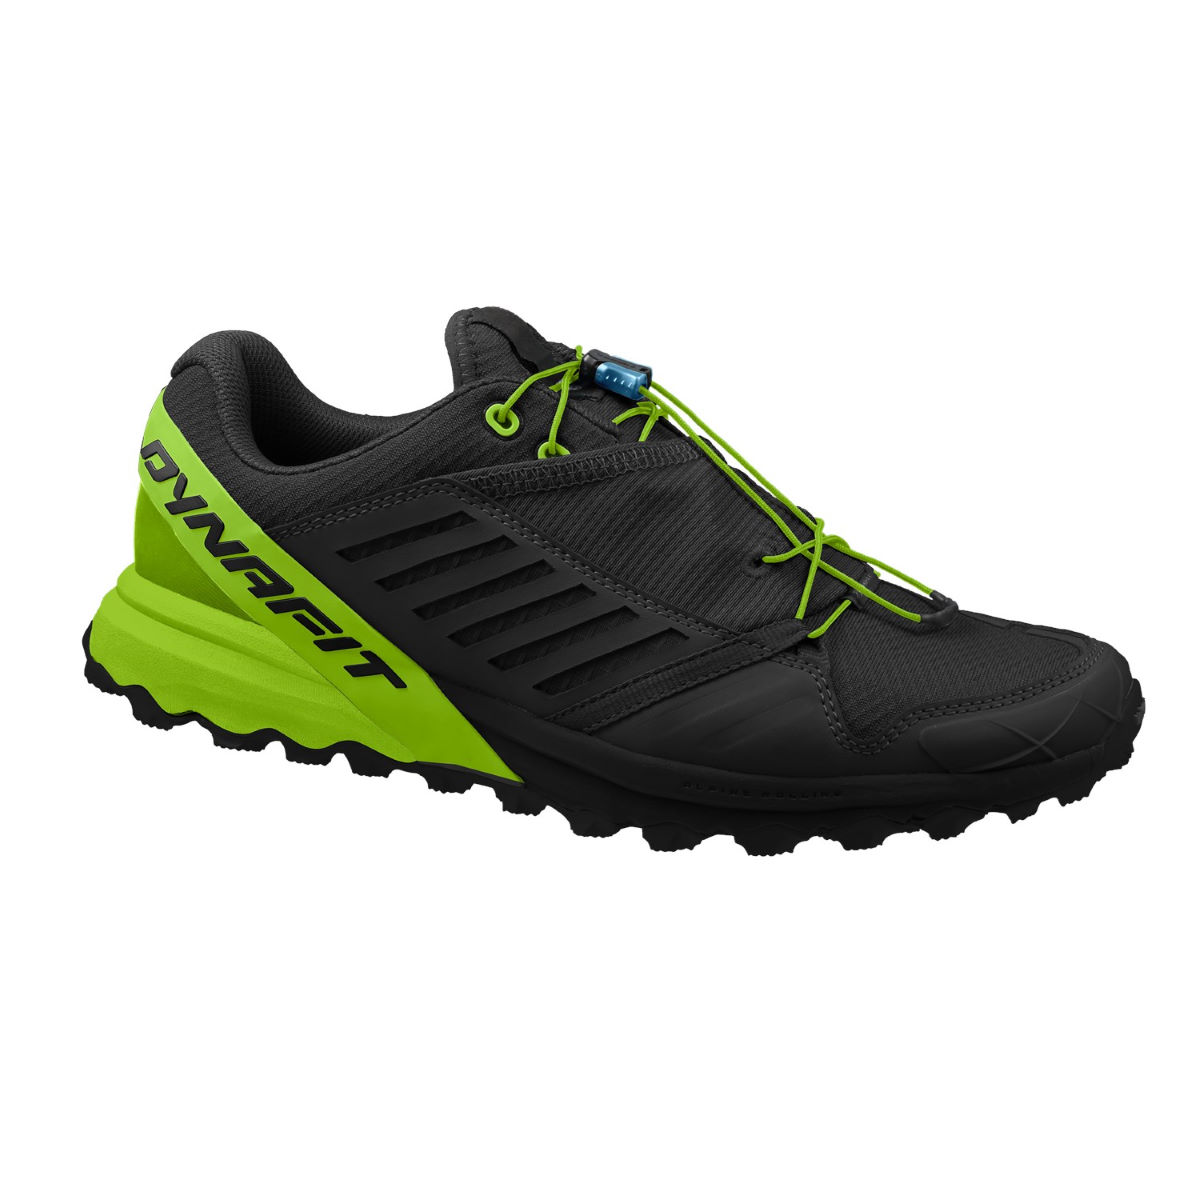 Zapatillas Dynafit Alpine Pro - Zapatillas de trail running